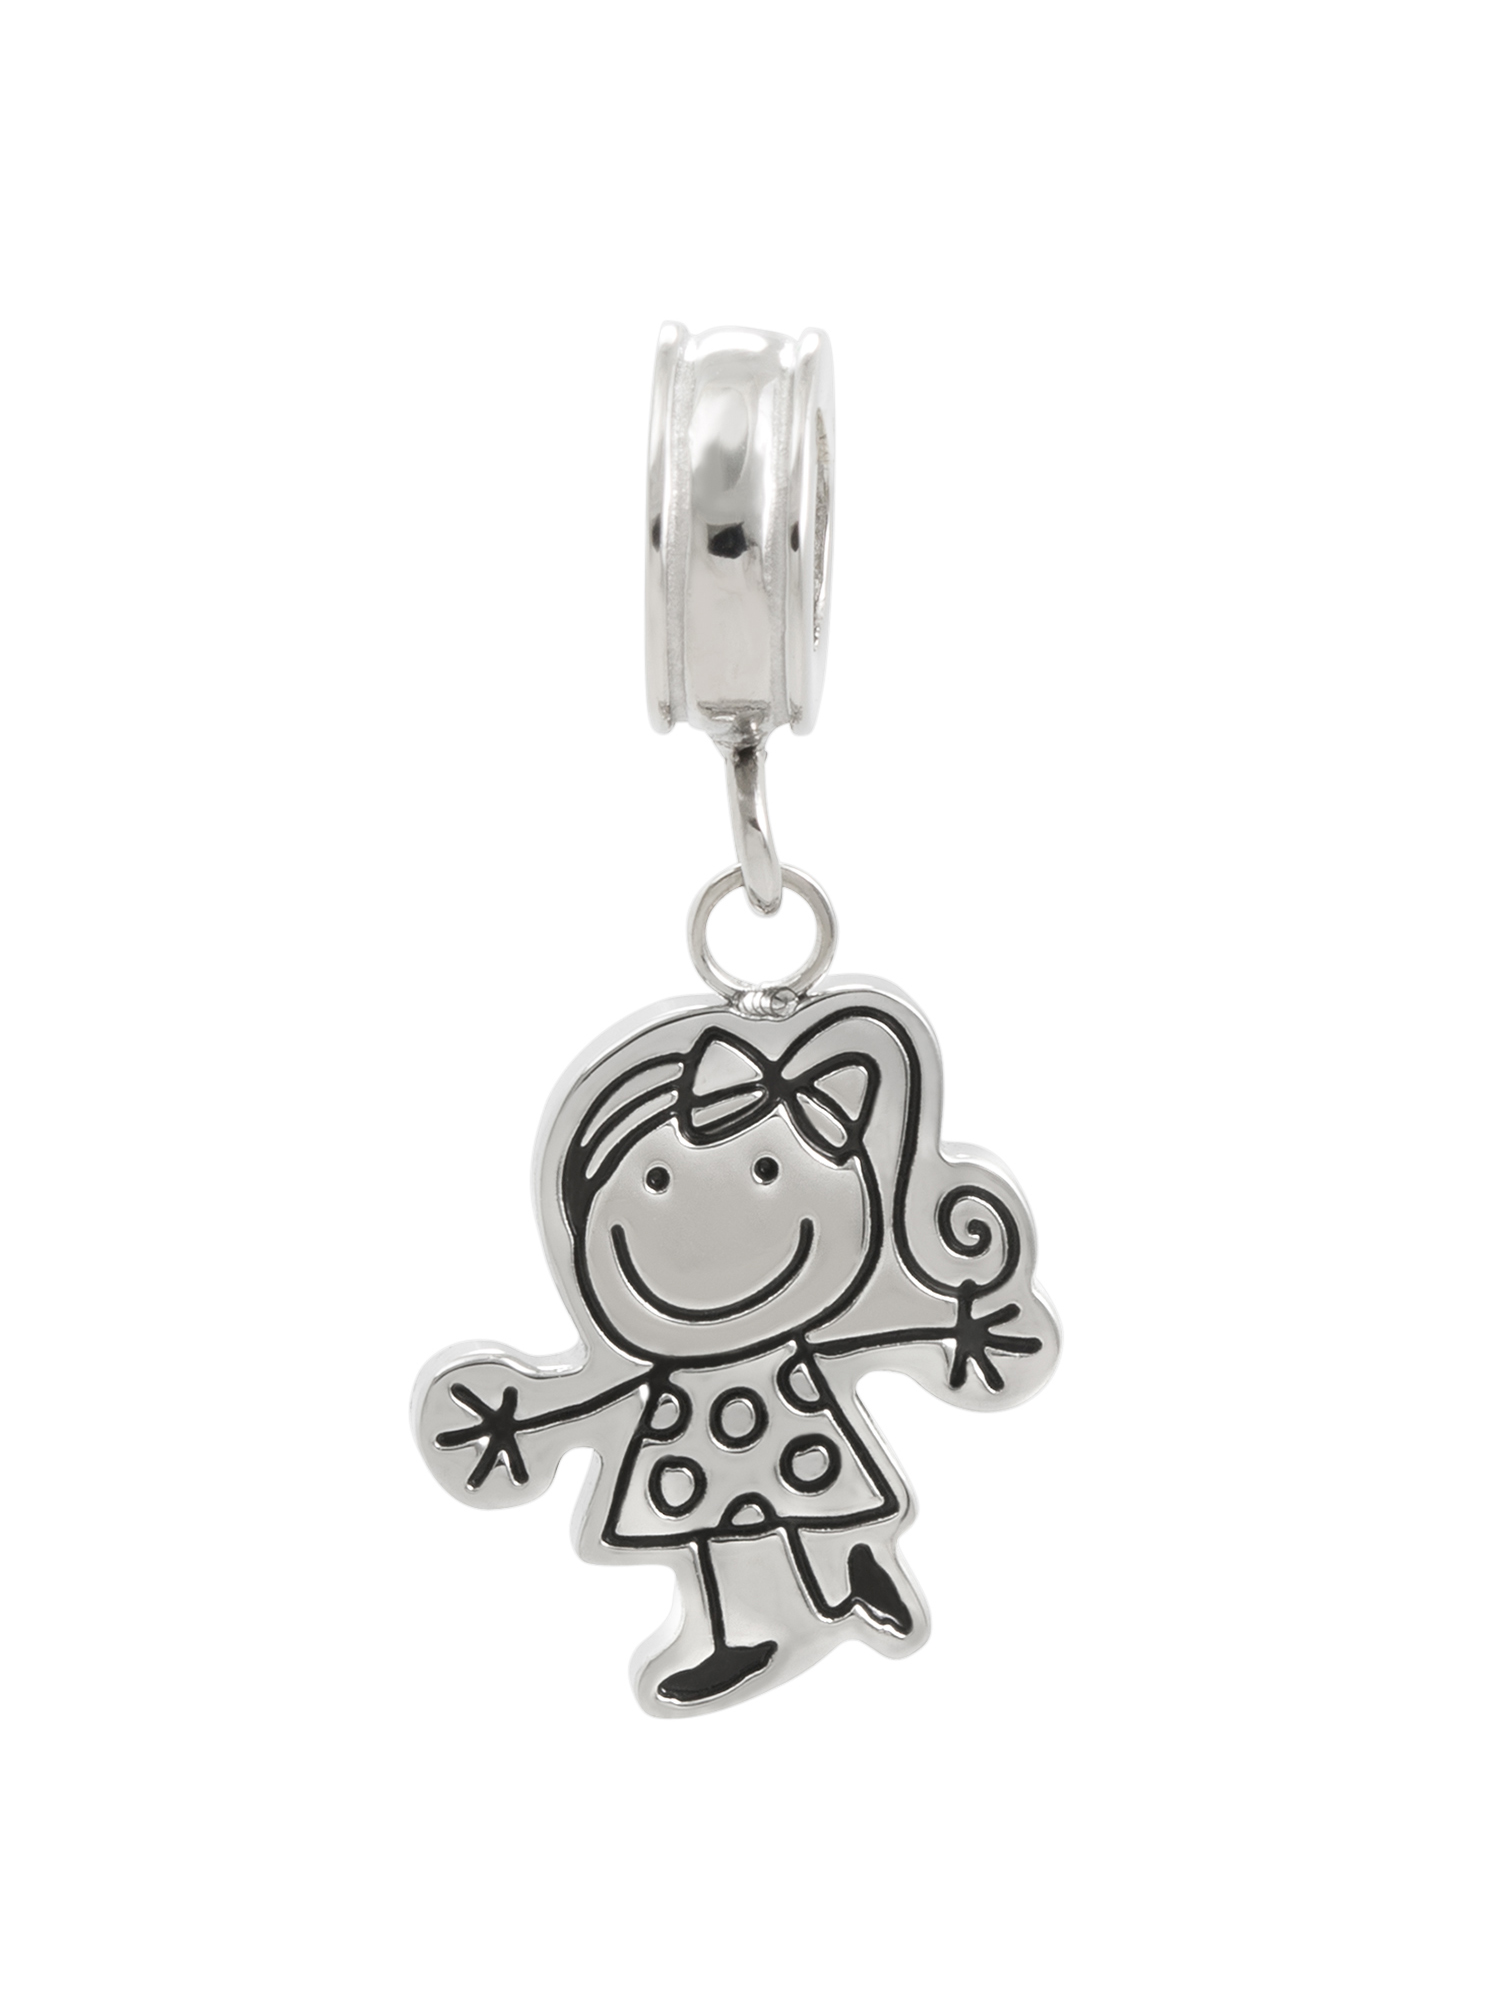 Connections from Hallmark Stainless Steel Girl Dangle Charm